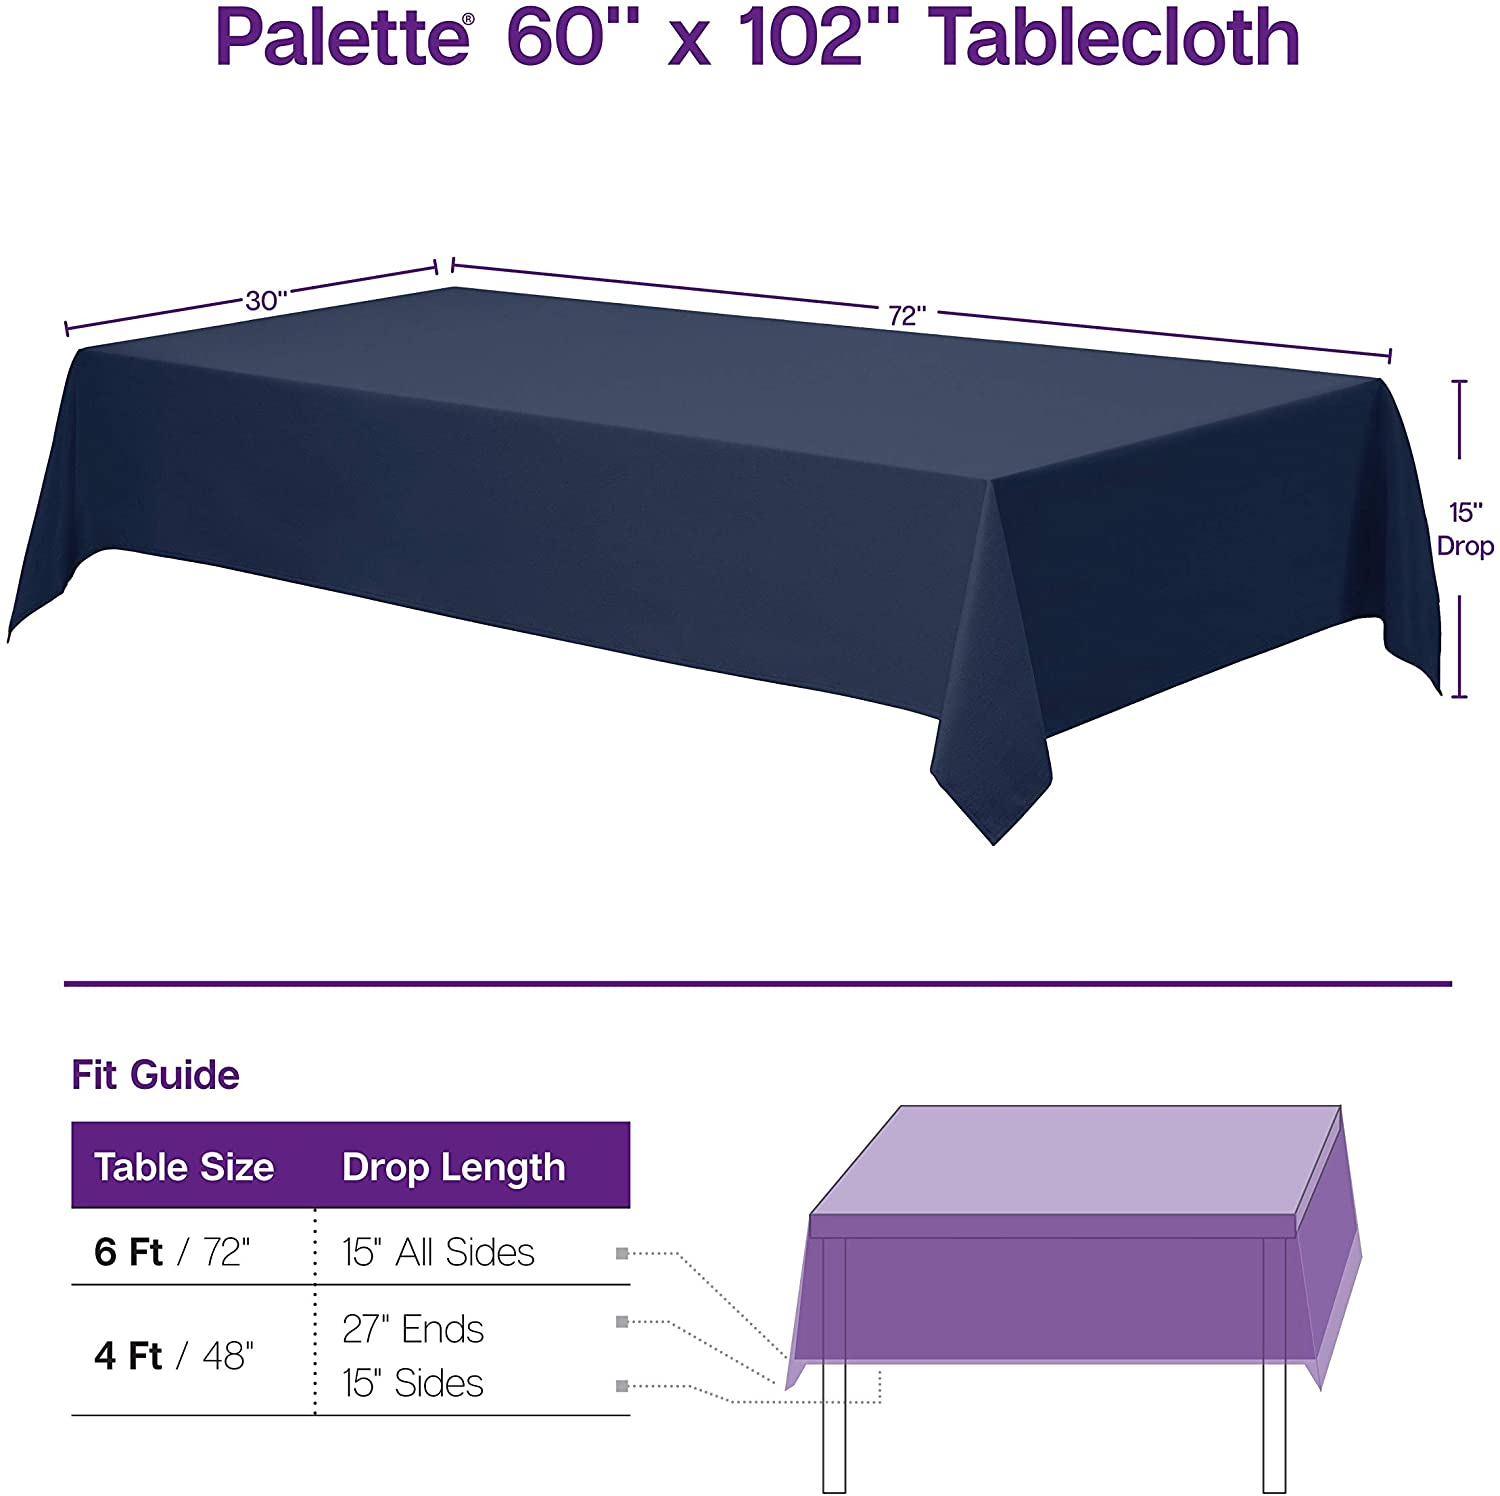 """Gee Di Moda Rectangle Tablecloth - 60 x 102"""" Inch - Pink Rectangular Table Cloth for 6 Foot Table in Washable Polyester - Great for Buffet Table, Parties, Holiday Dinner, Wedding & More: Home & Kitchen"""